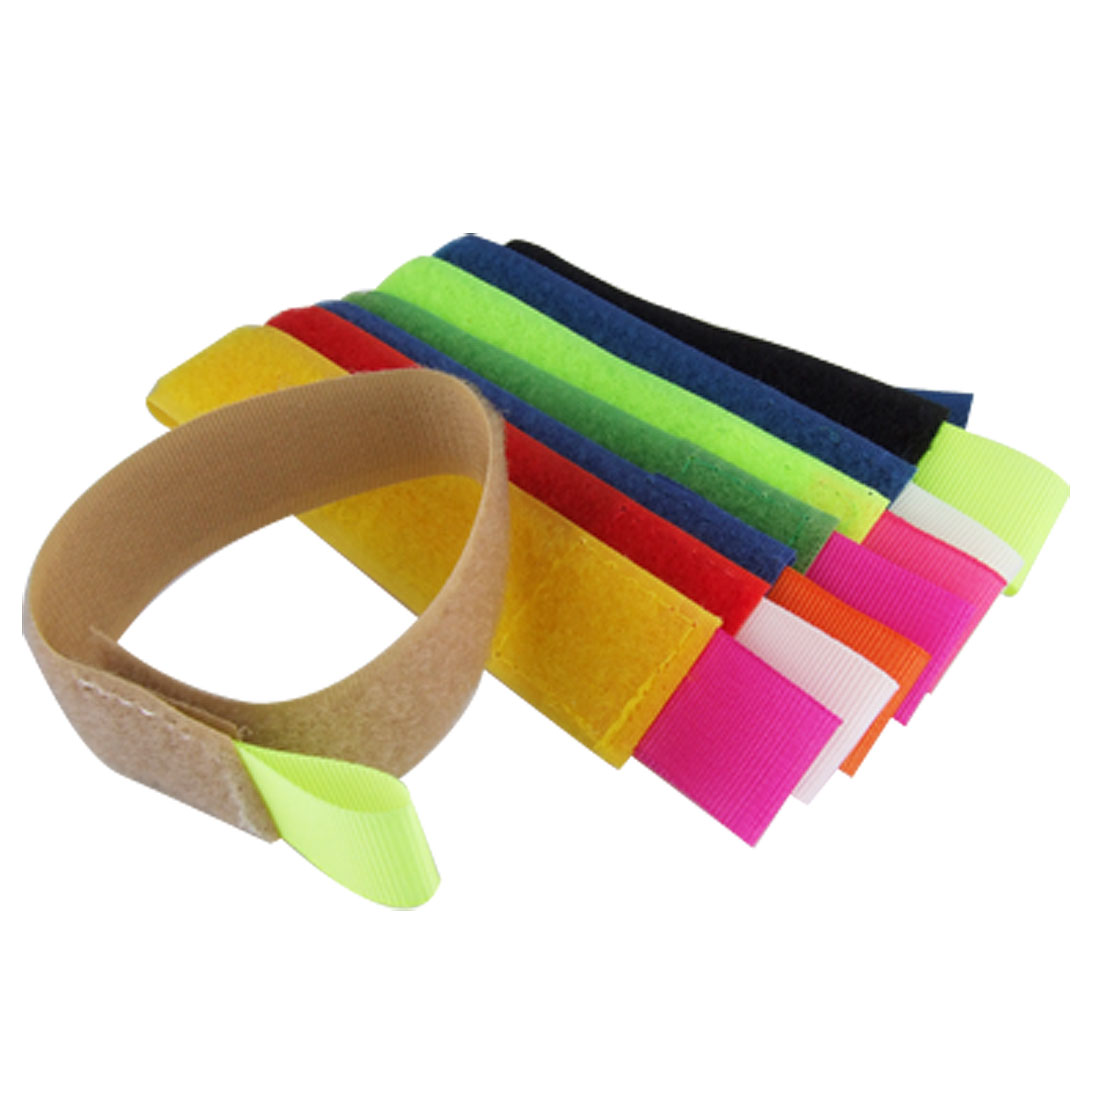 8 PCS Colorful Genuine Hook and Loop Fastener Band Cable Cord Ties Strap